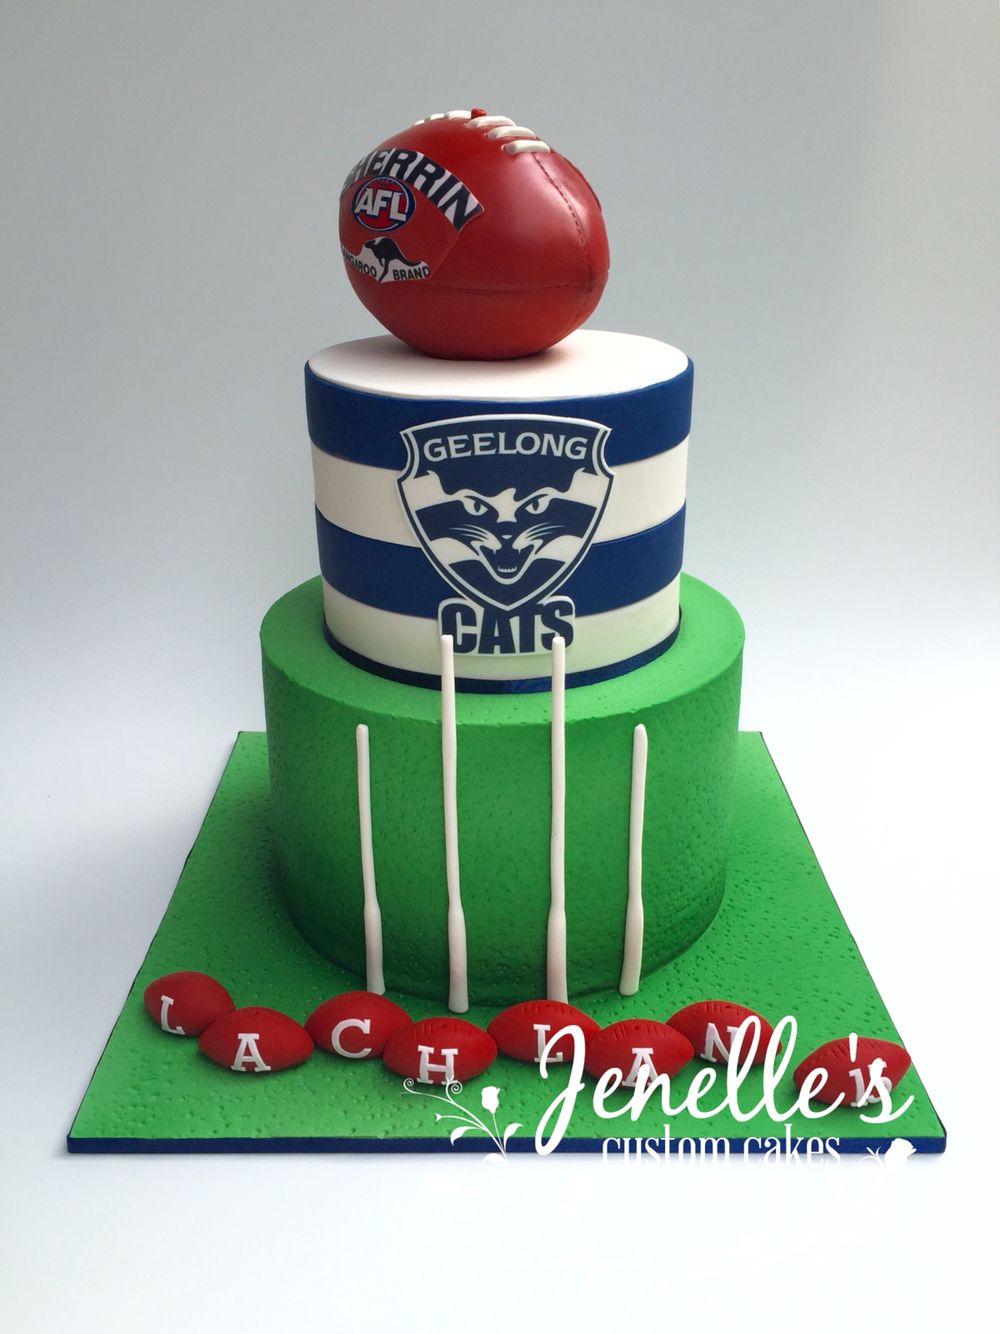 Geelong Cats Football Club Cake With Fully Edible Football By